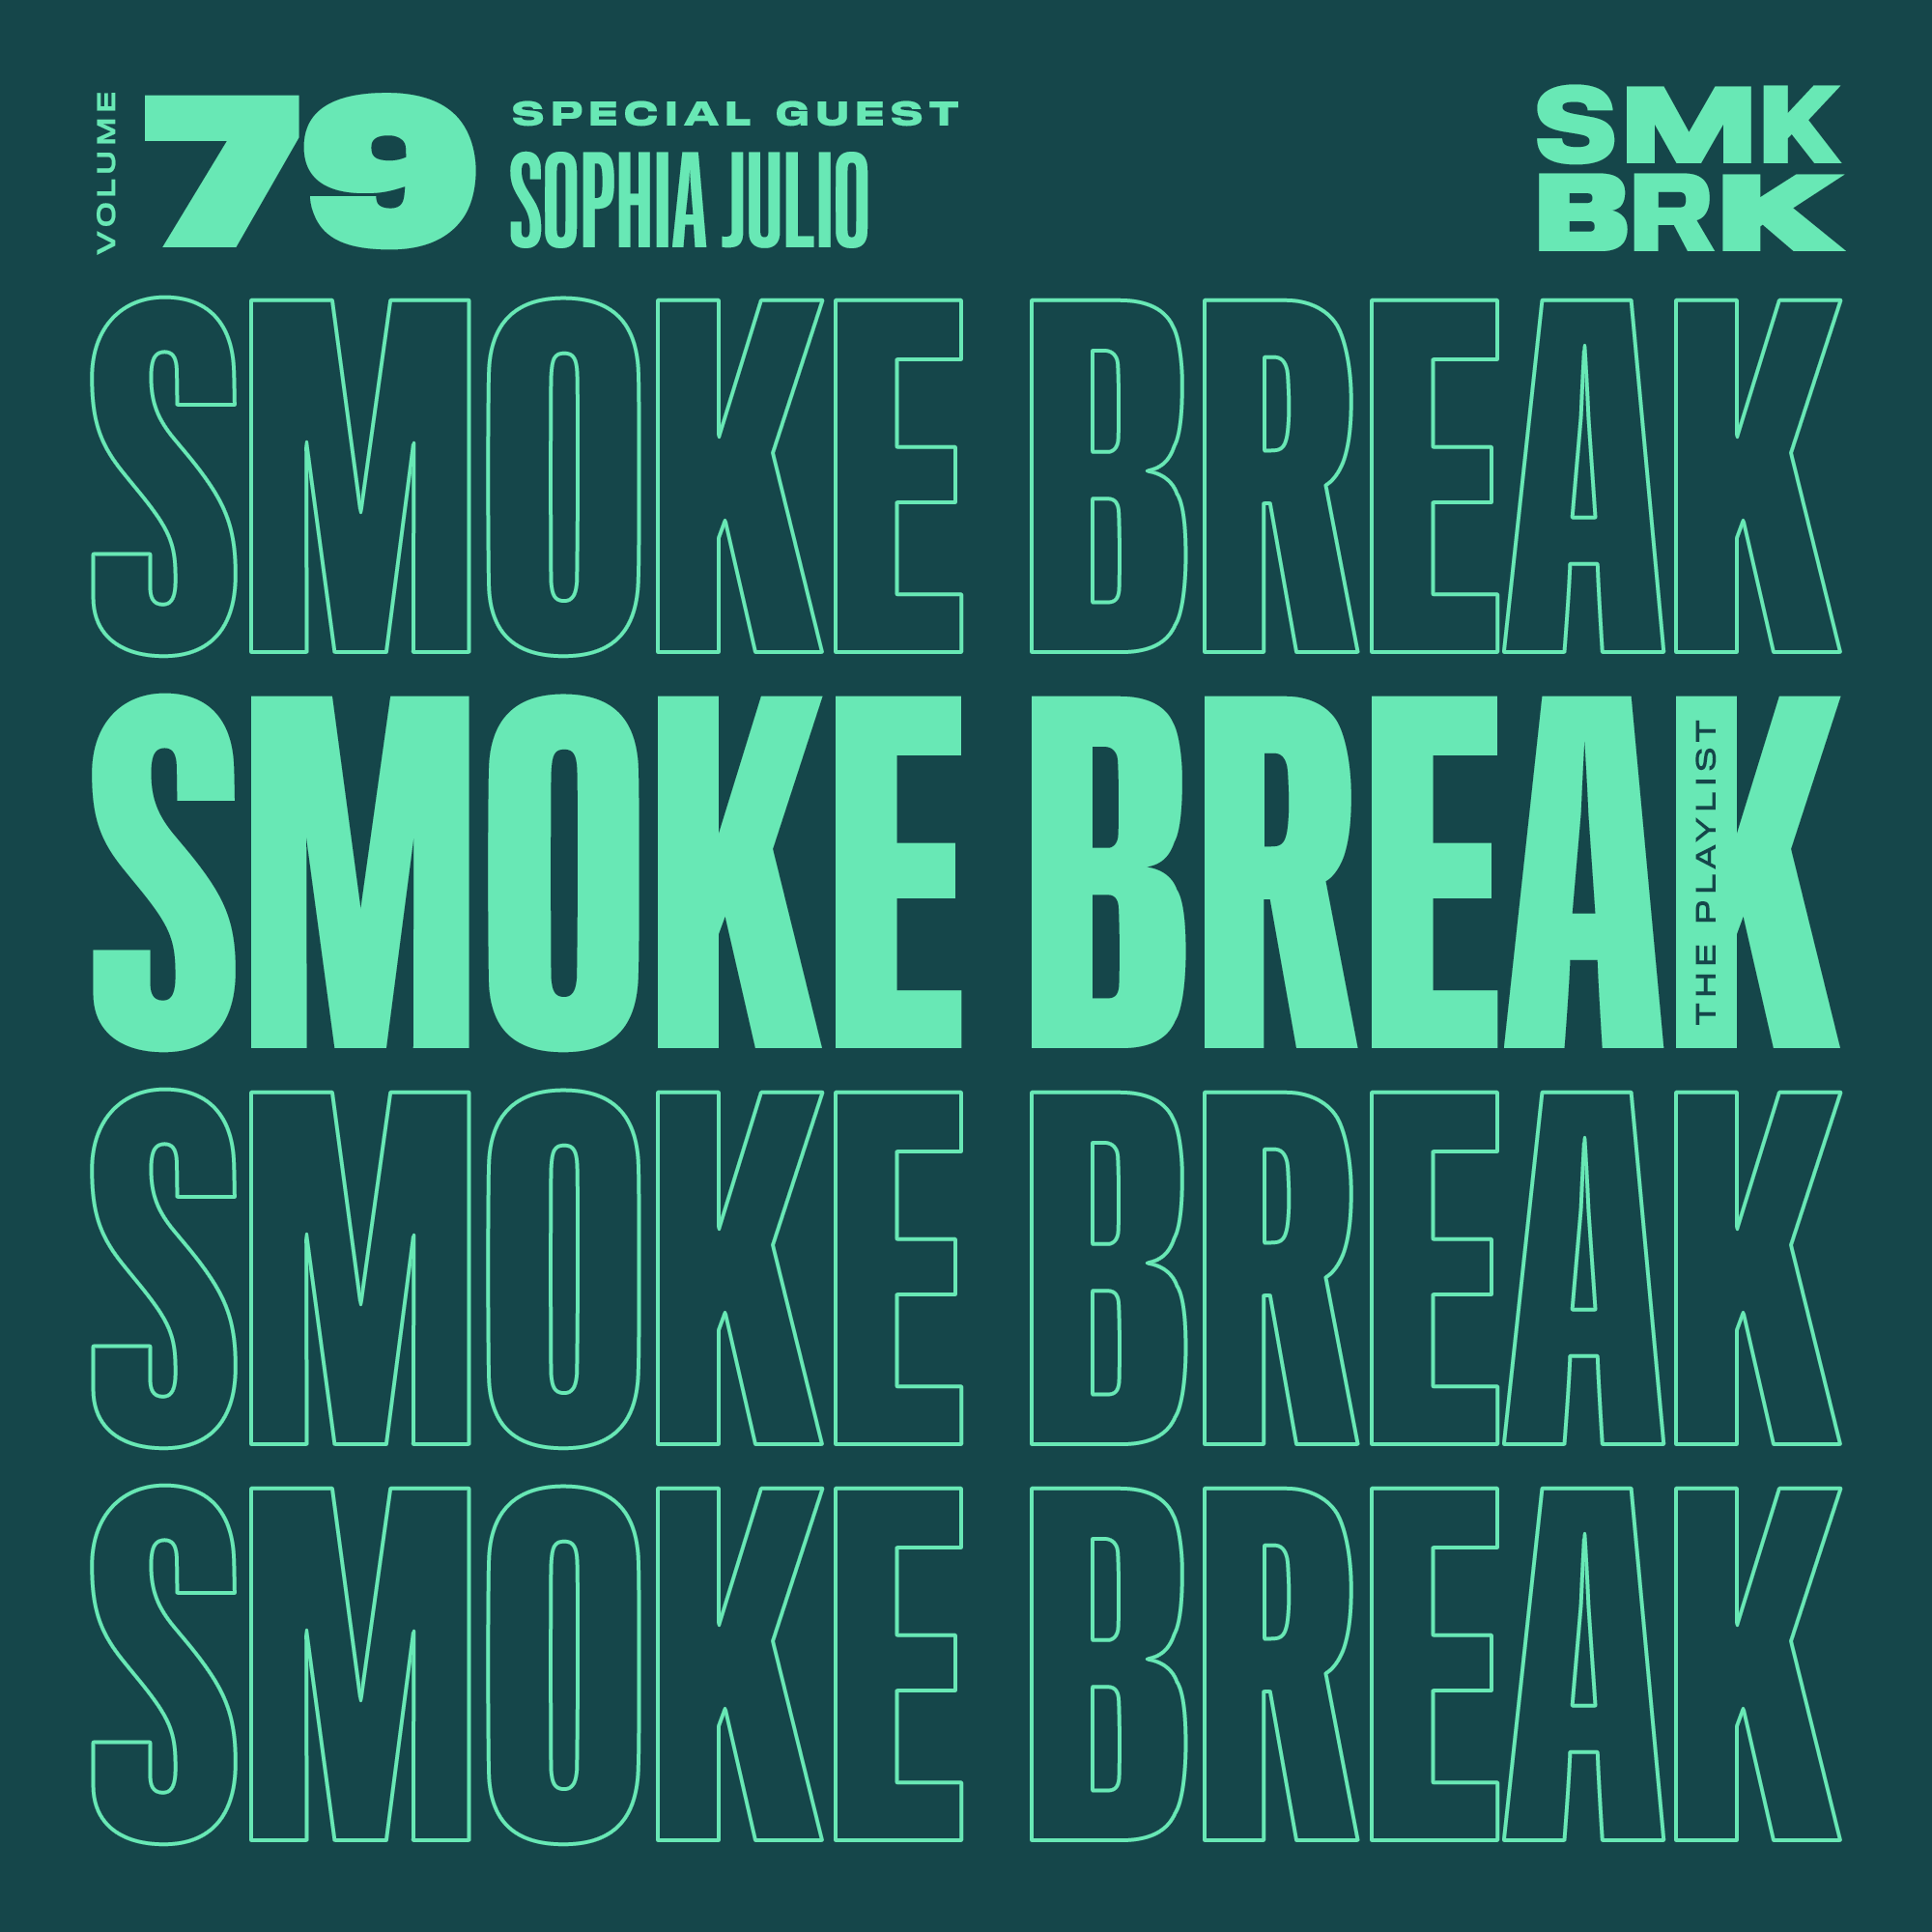 SMK BRK playlist vol 79 front cover